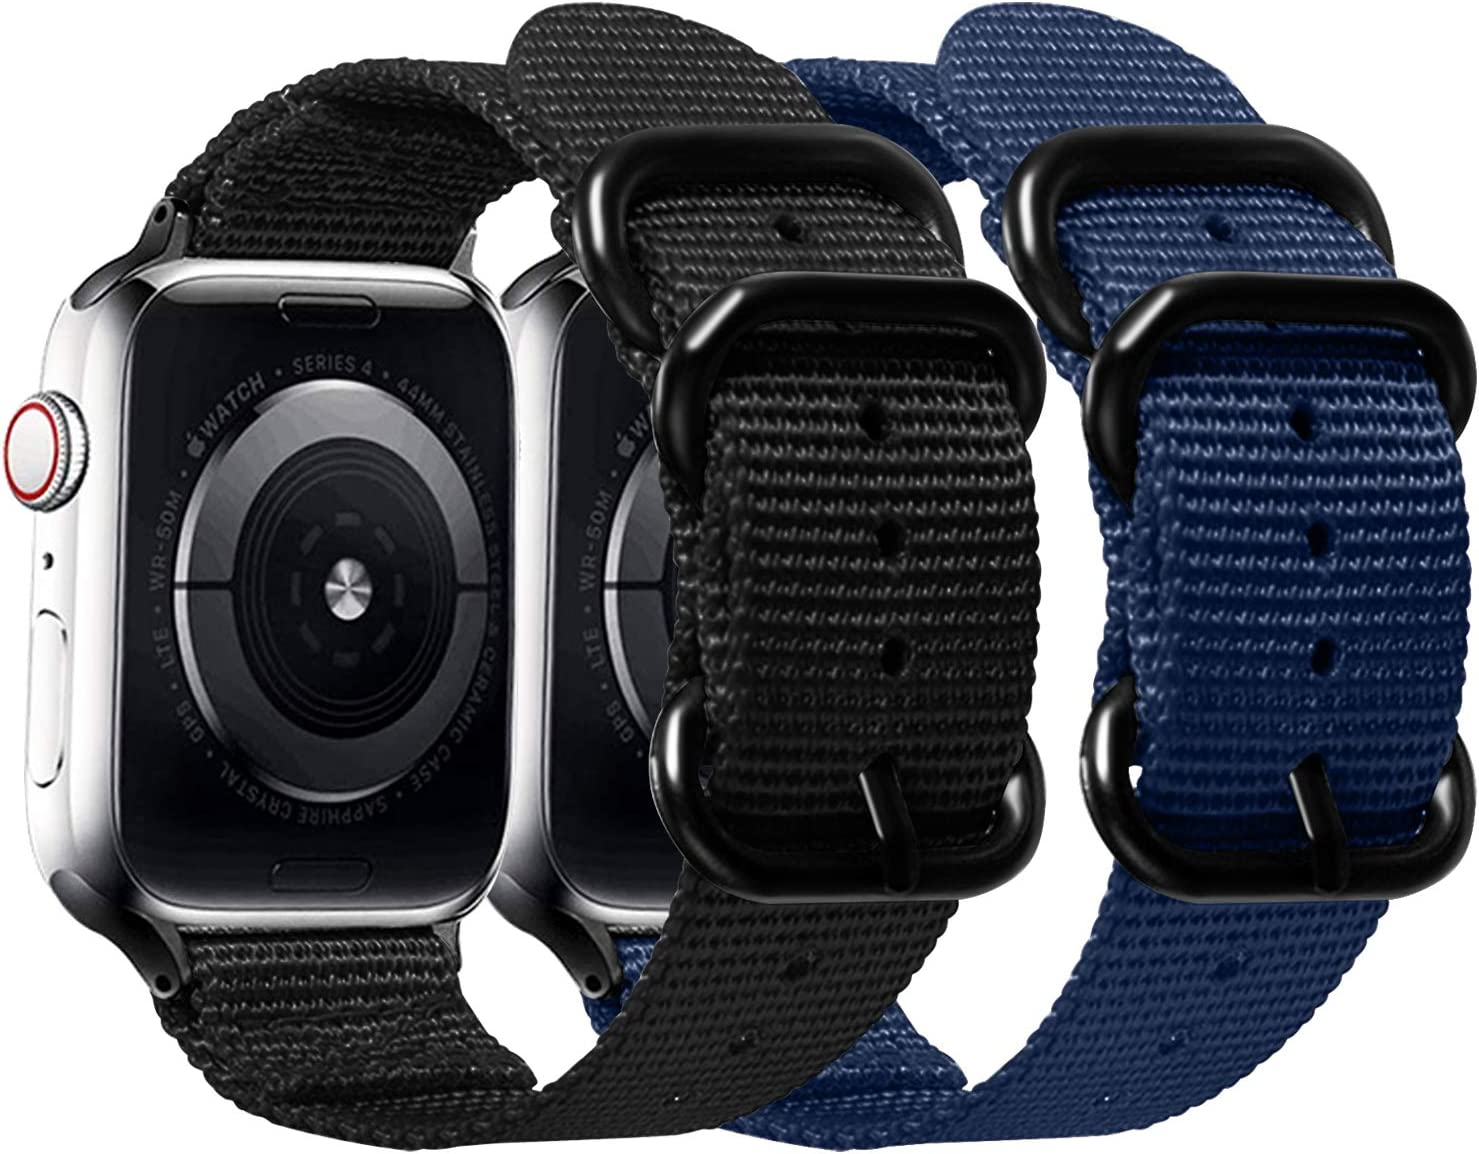 Misker Nylon Band Compatible with Apple Watch Band 44mm 42mm 40mm 38mm,Breathable Sport Strap with Metal Buckle Compatible with iwatch Series 5/4/3/2/1 (2-Packs Black/Navy Blue, 38mm/40mm)